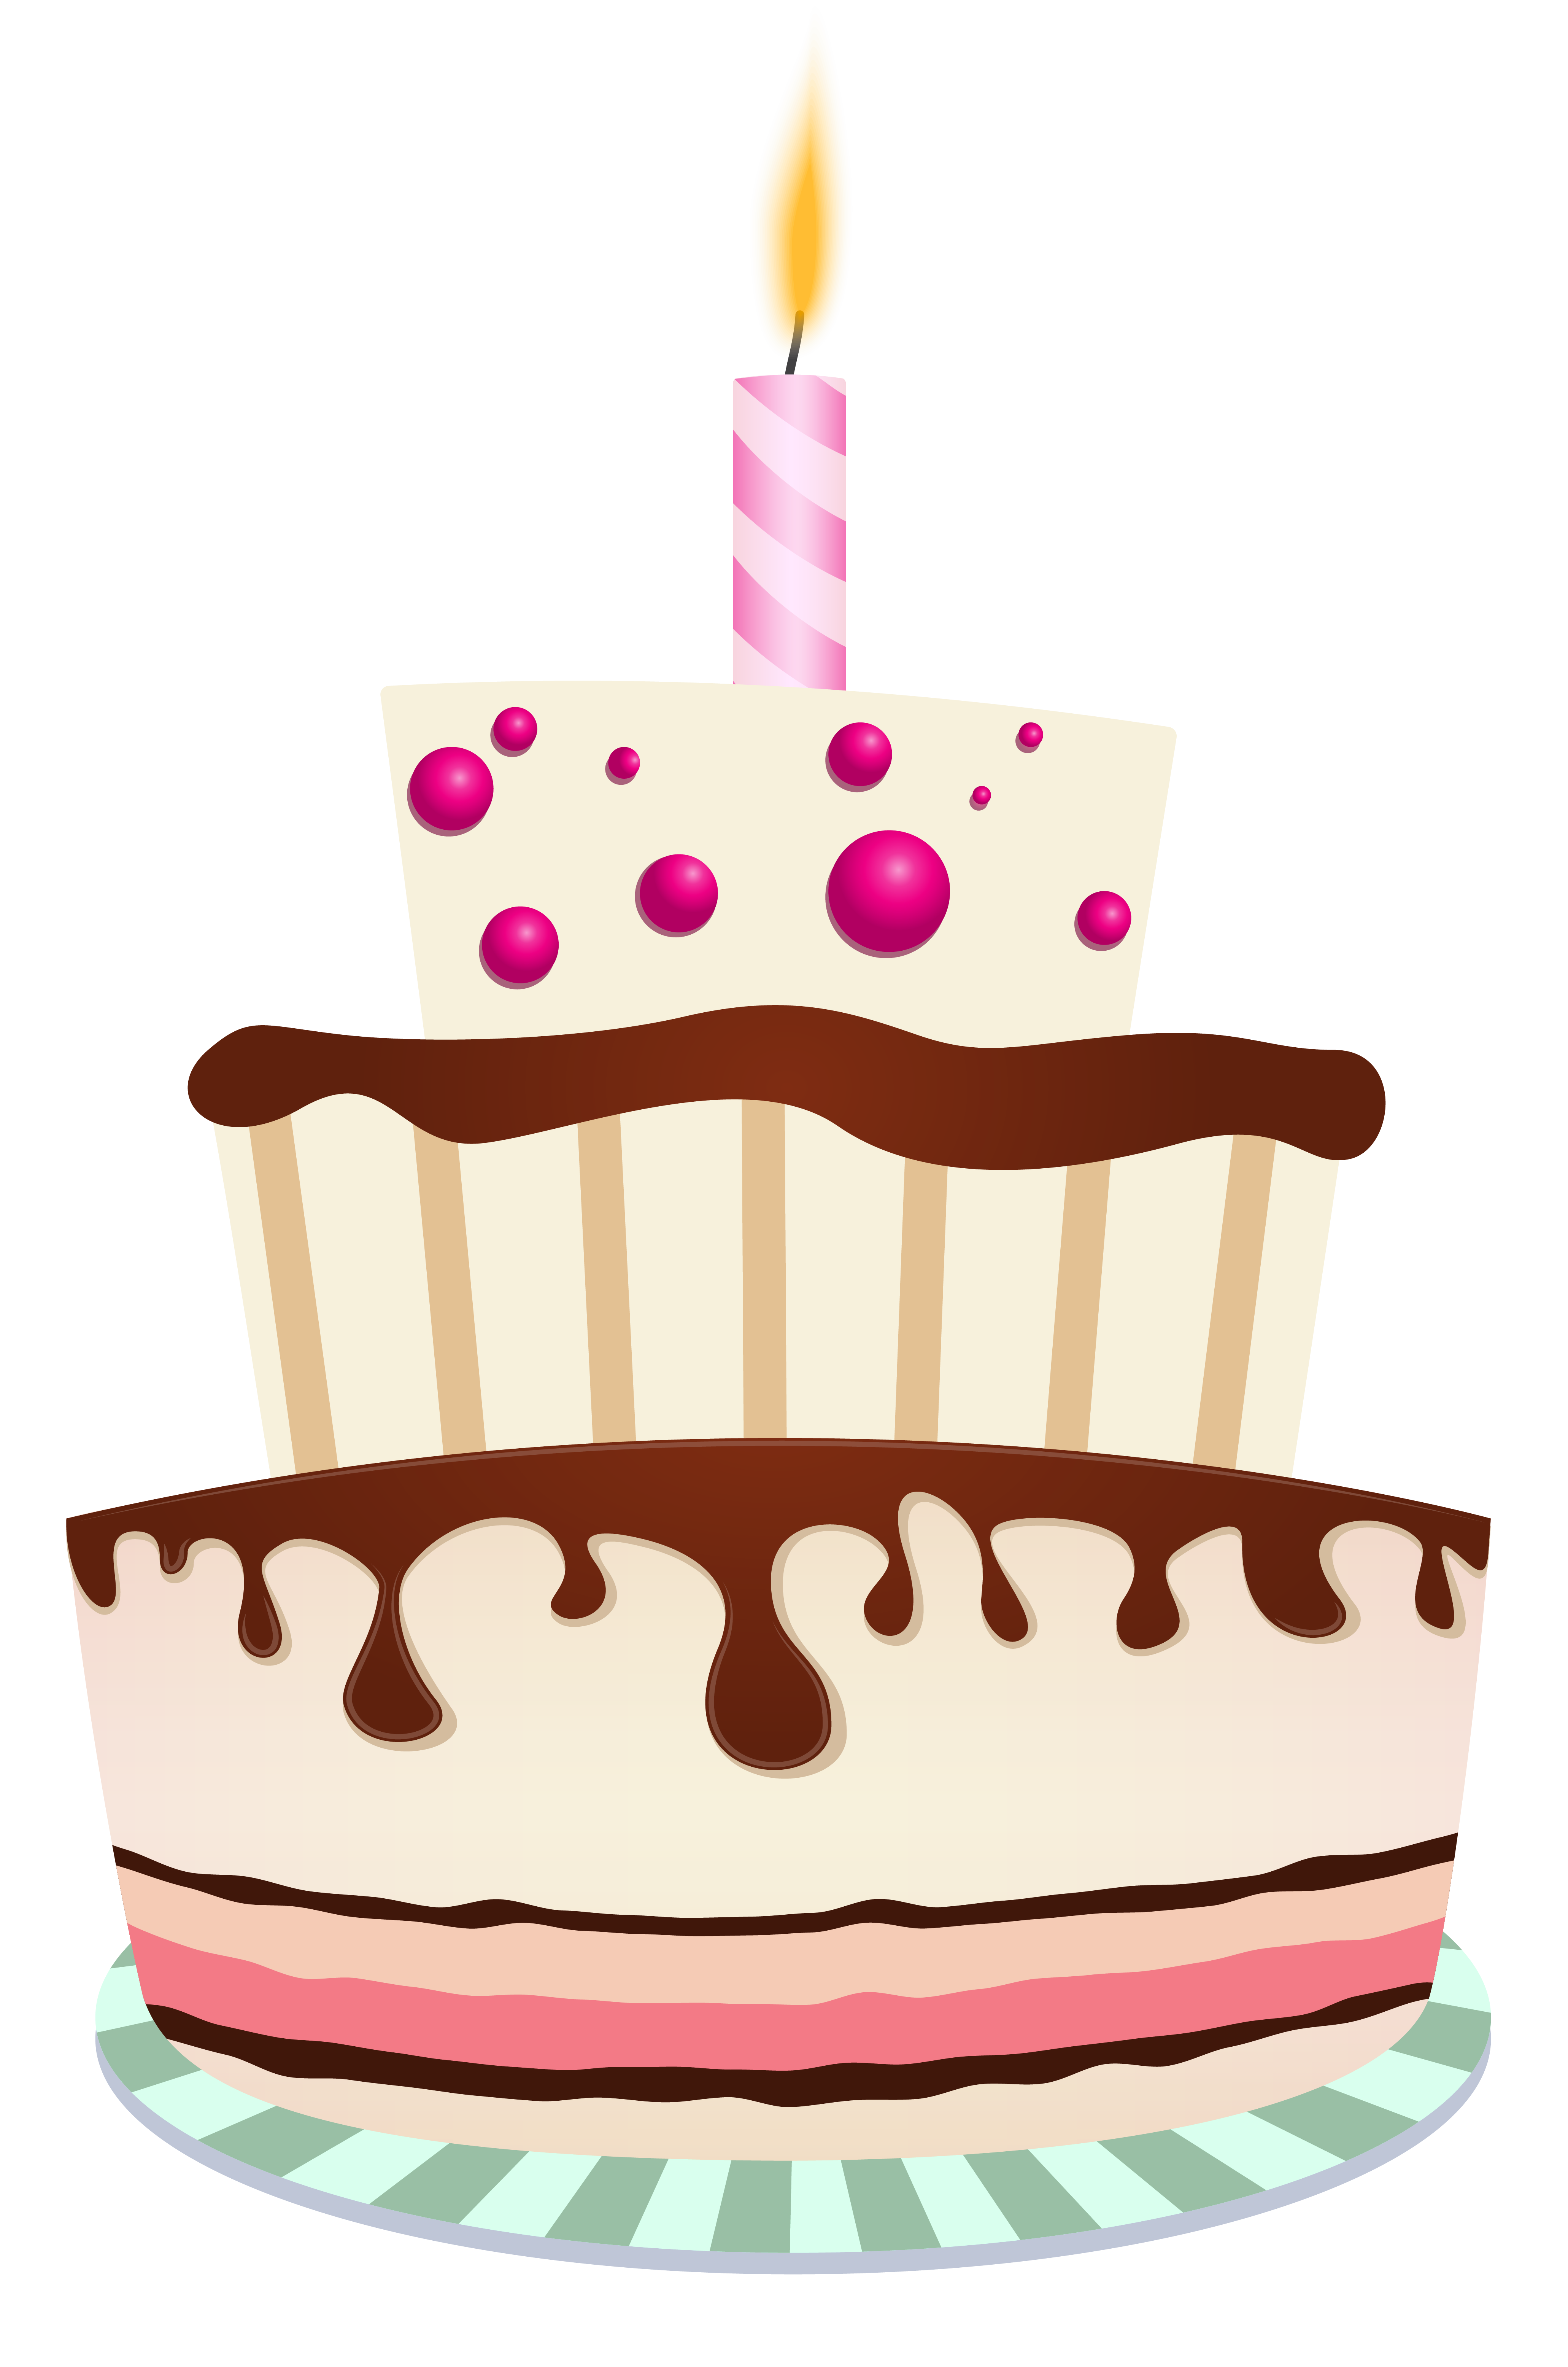 Plate clipart muffin Cliparts Birthday Happy With Birthday